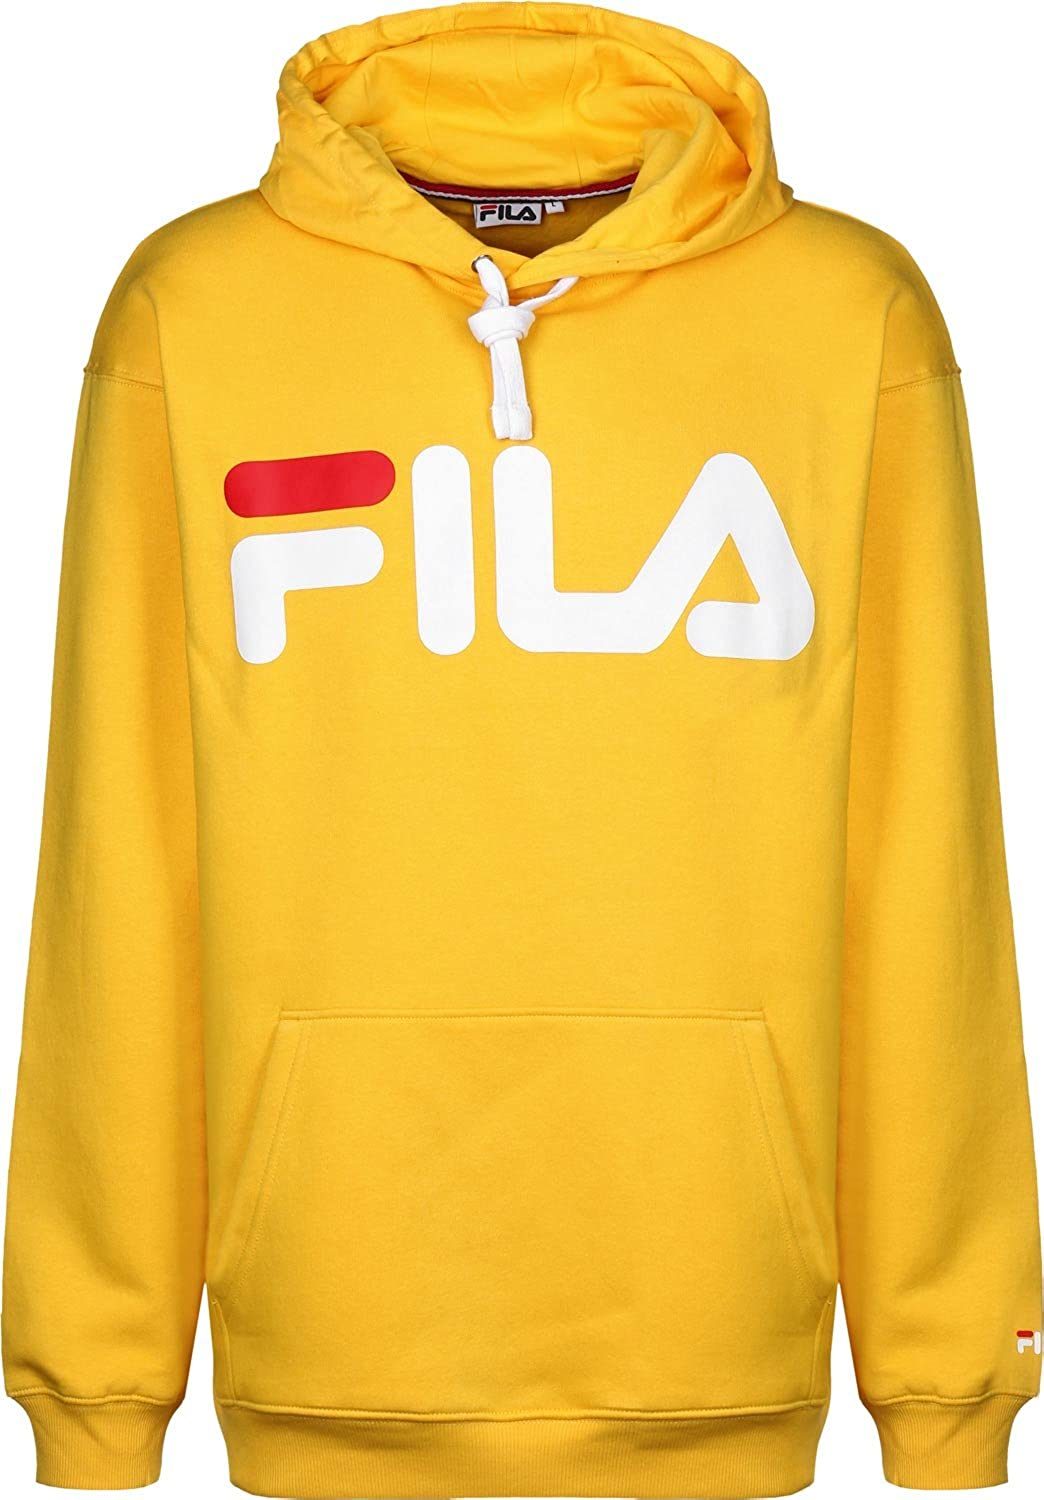 a3782604f0 Fila Men's Hoodie - Yellow - Medium: Amazon.co.uk: Clothing